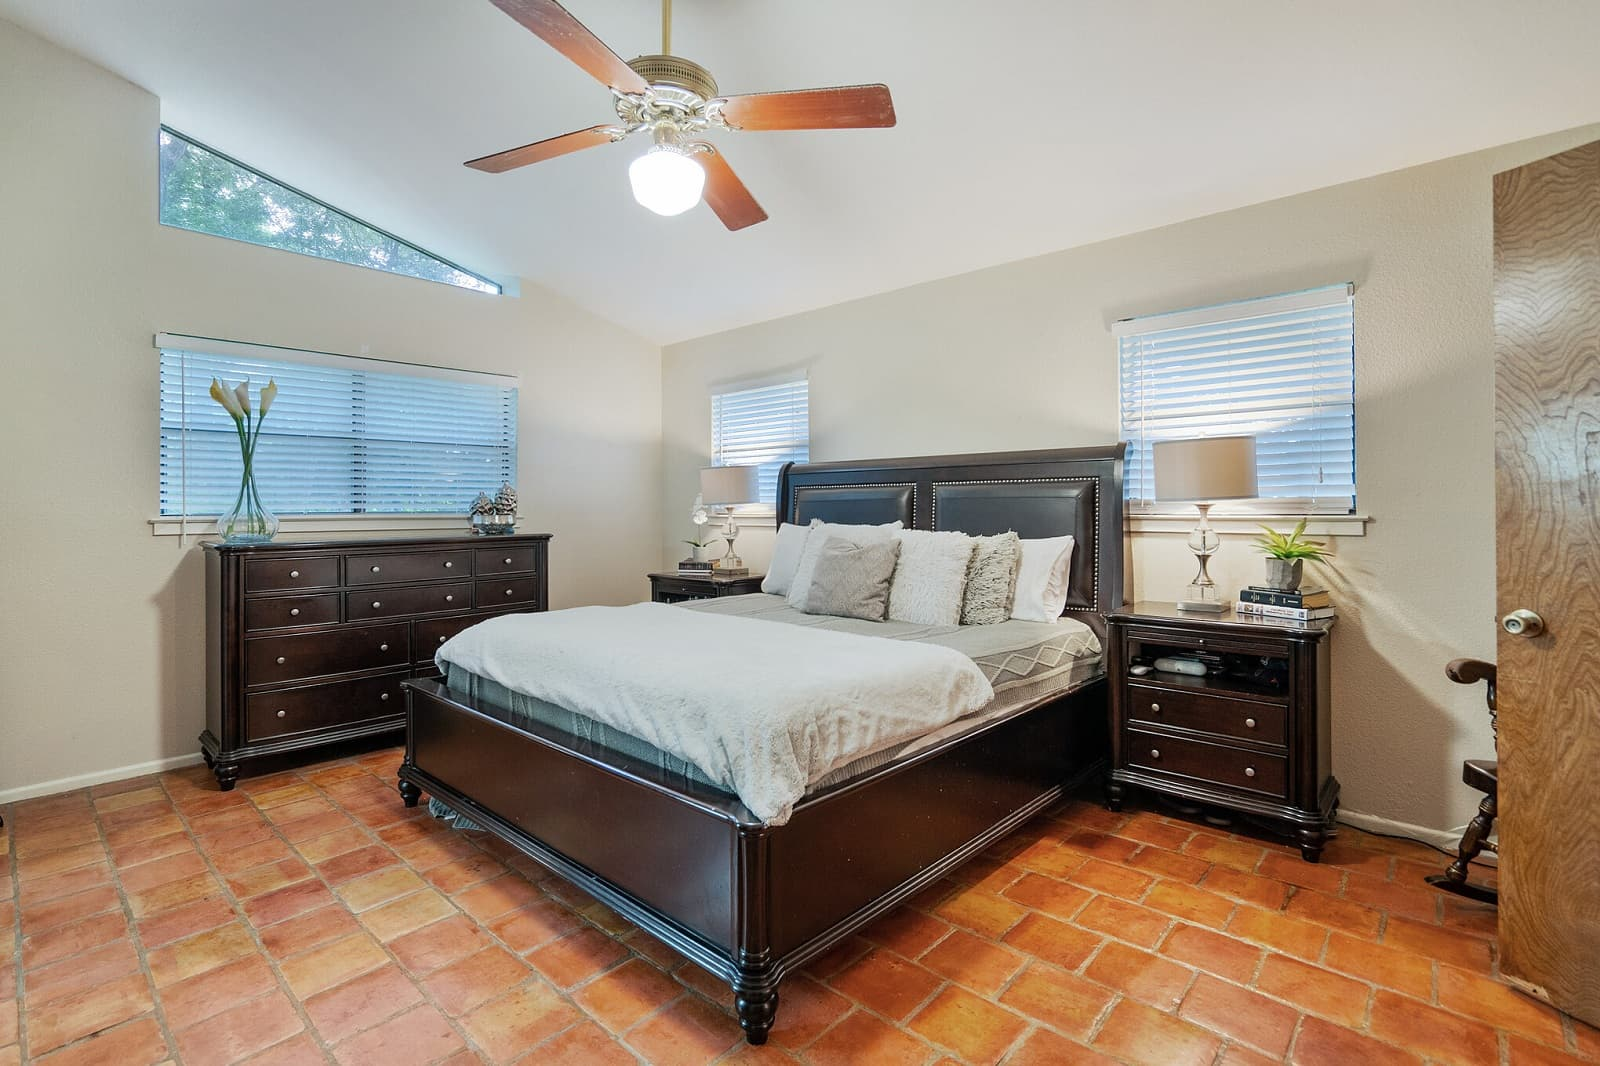 Real Estate Photography in Seguin - TX - Bedroom View